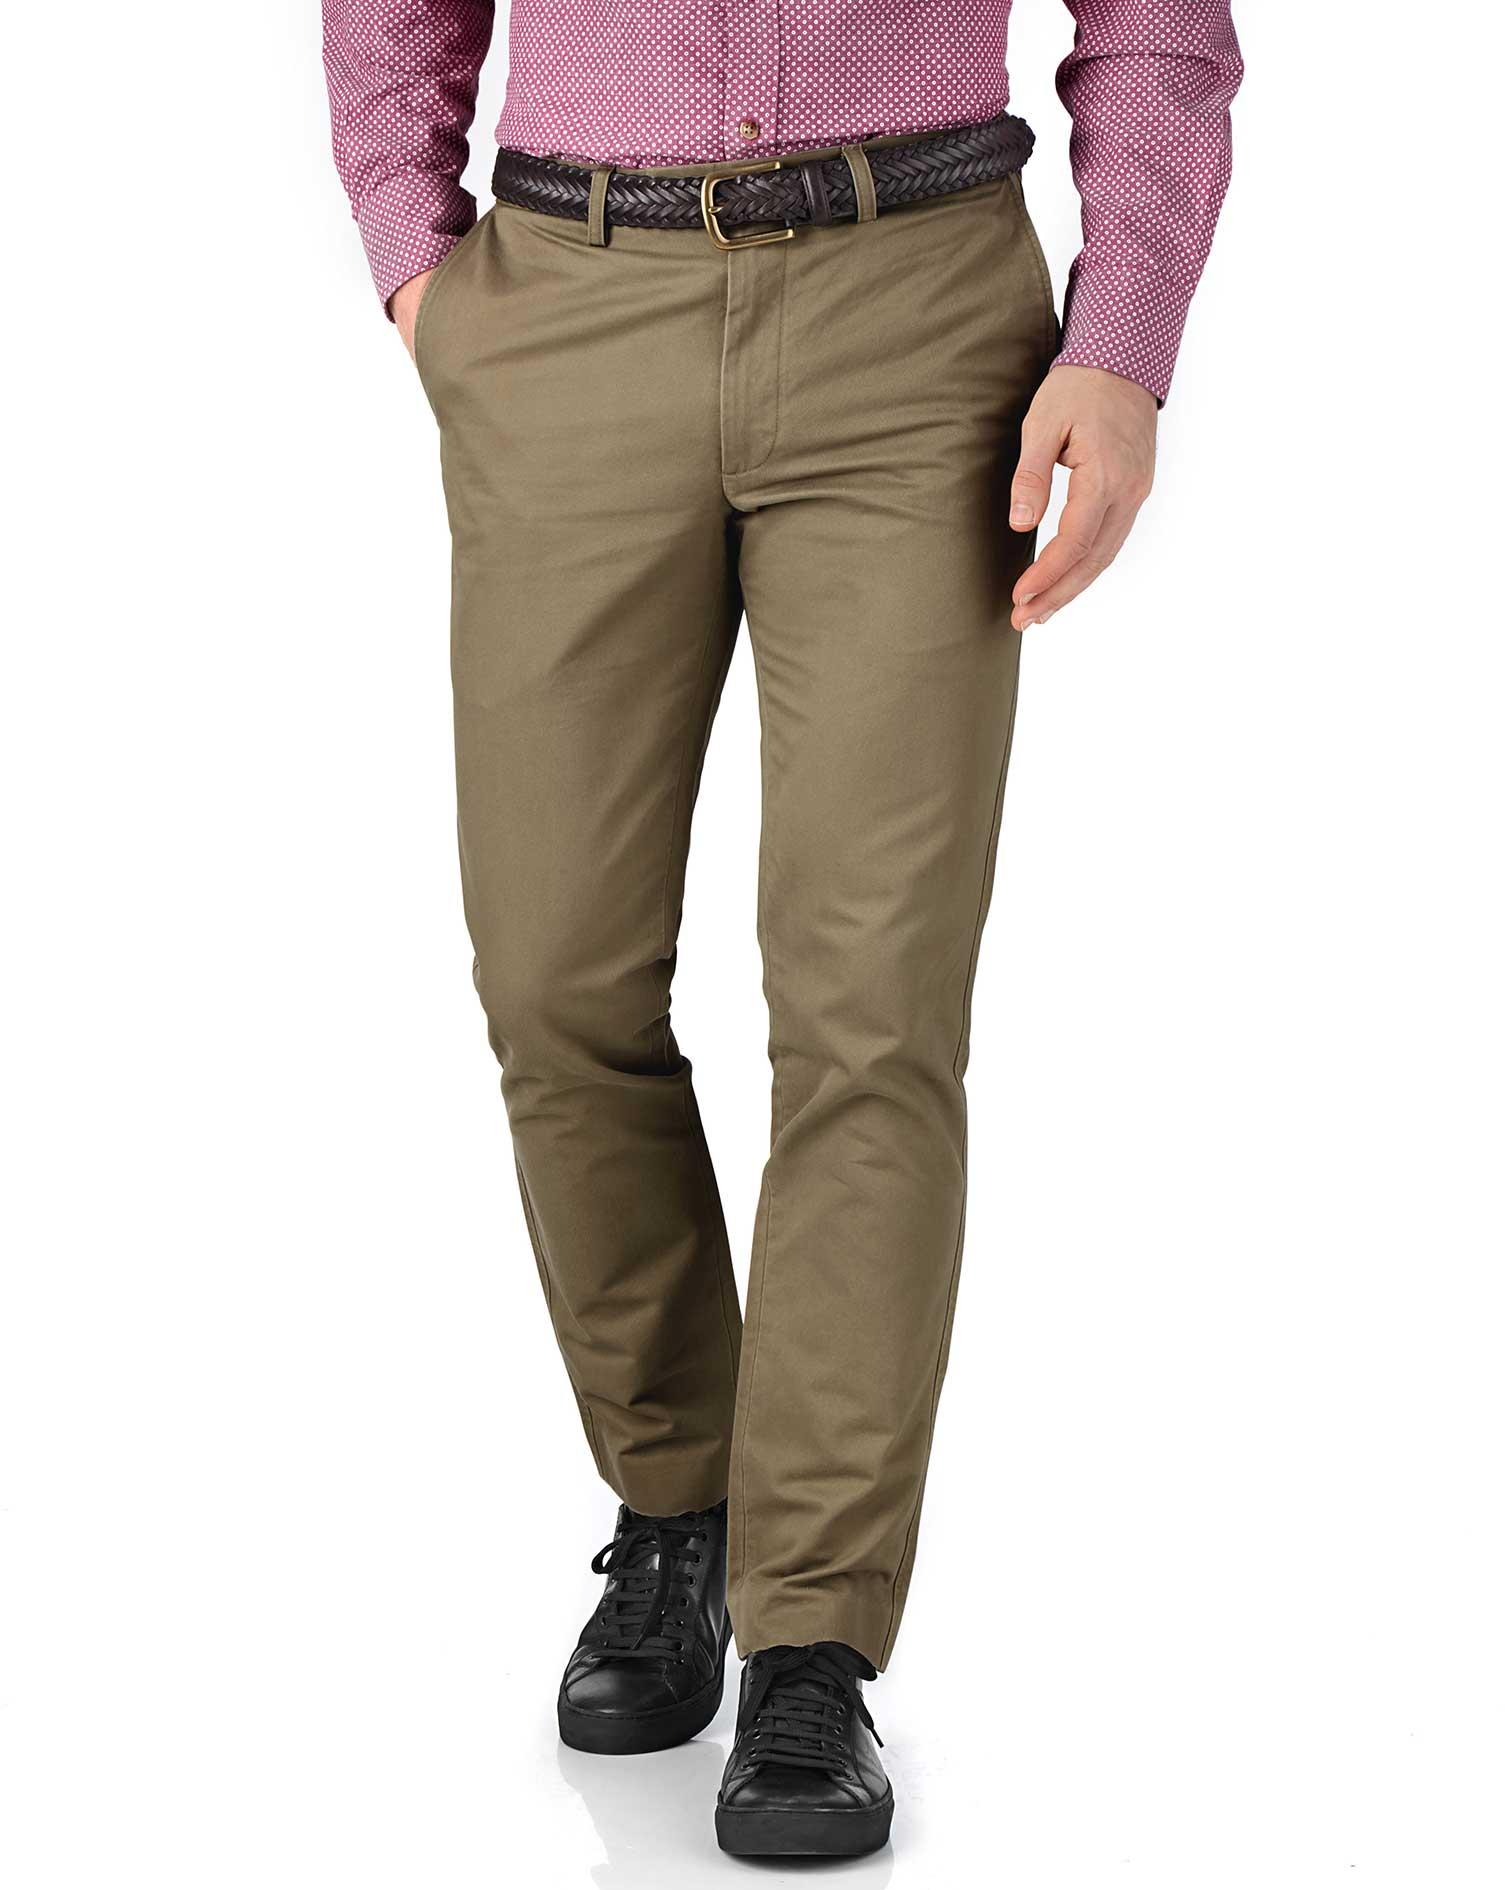 Beige Extra Slim Fit Flat Front Cotton Chino Trousers Size W30 L38 by Charles Tyrwhitt